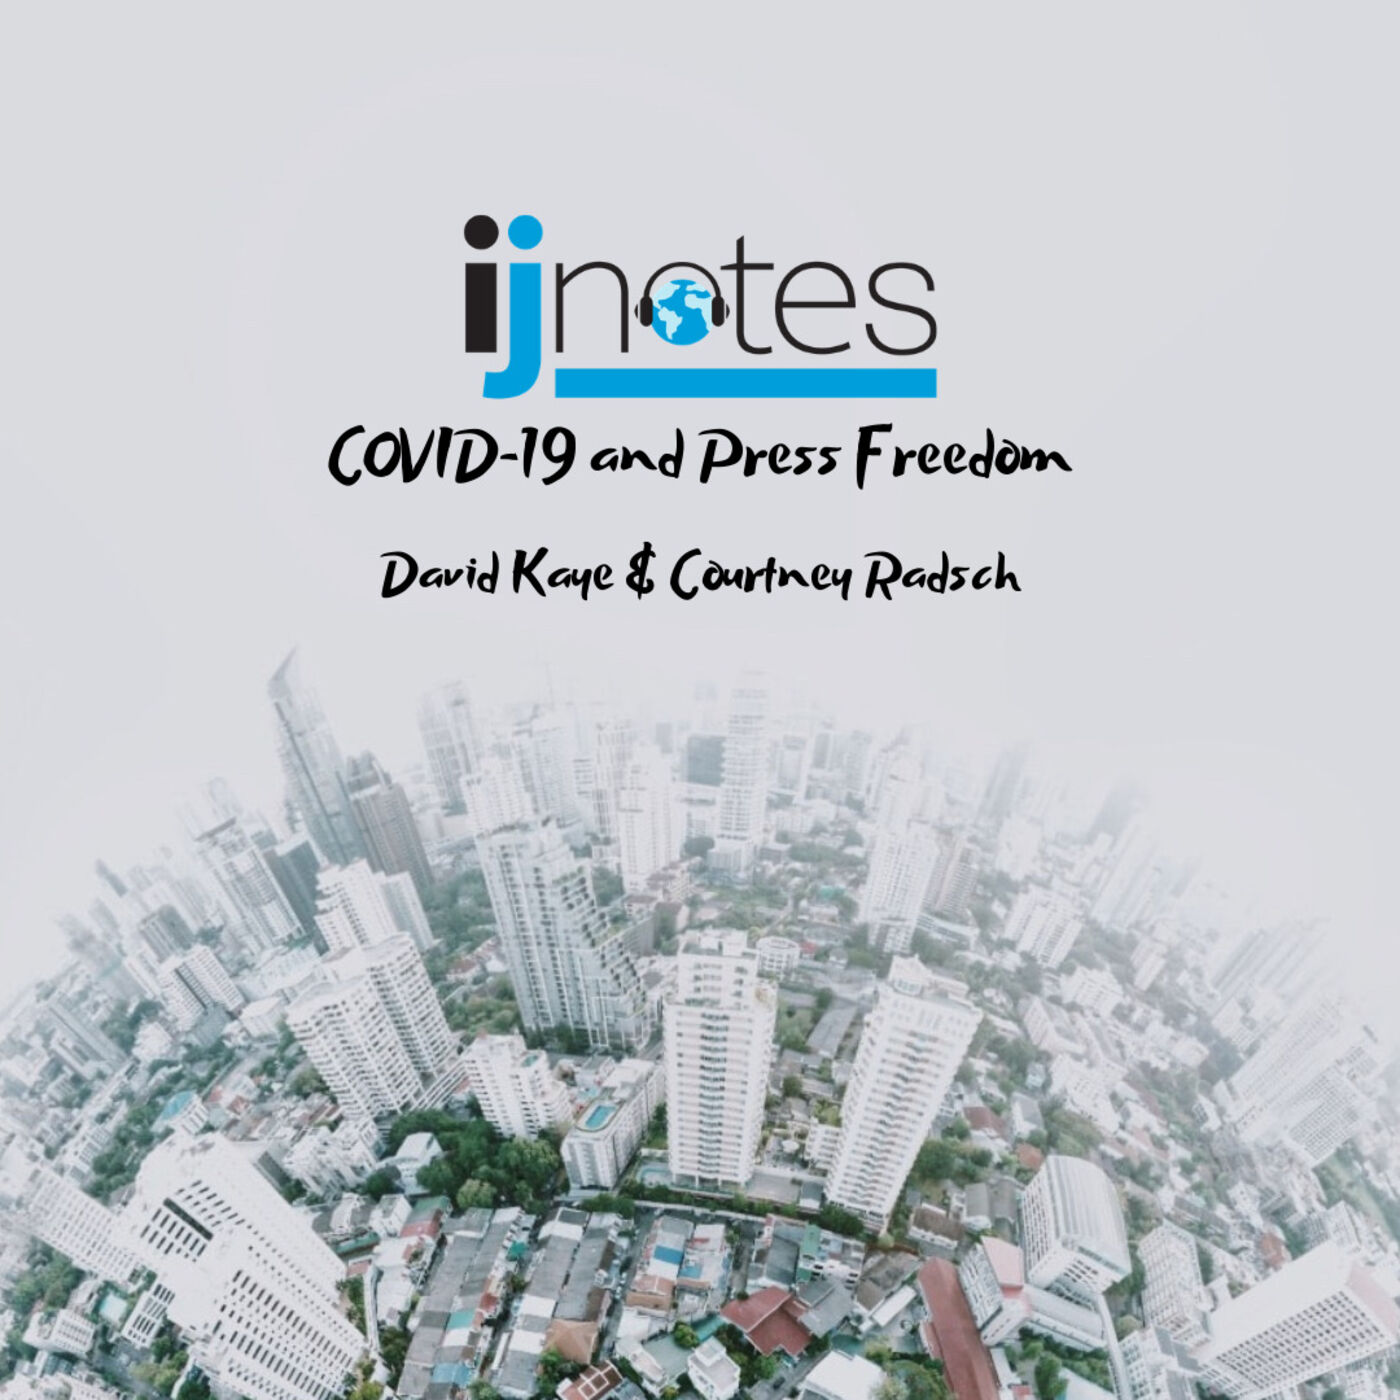 COVID-19 and press freedom: A conversation with Prof. David Kaye and Dr. Courtney Radsch